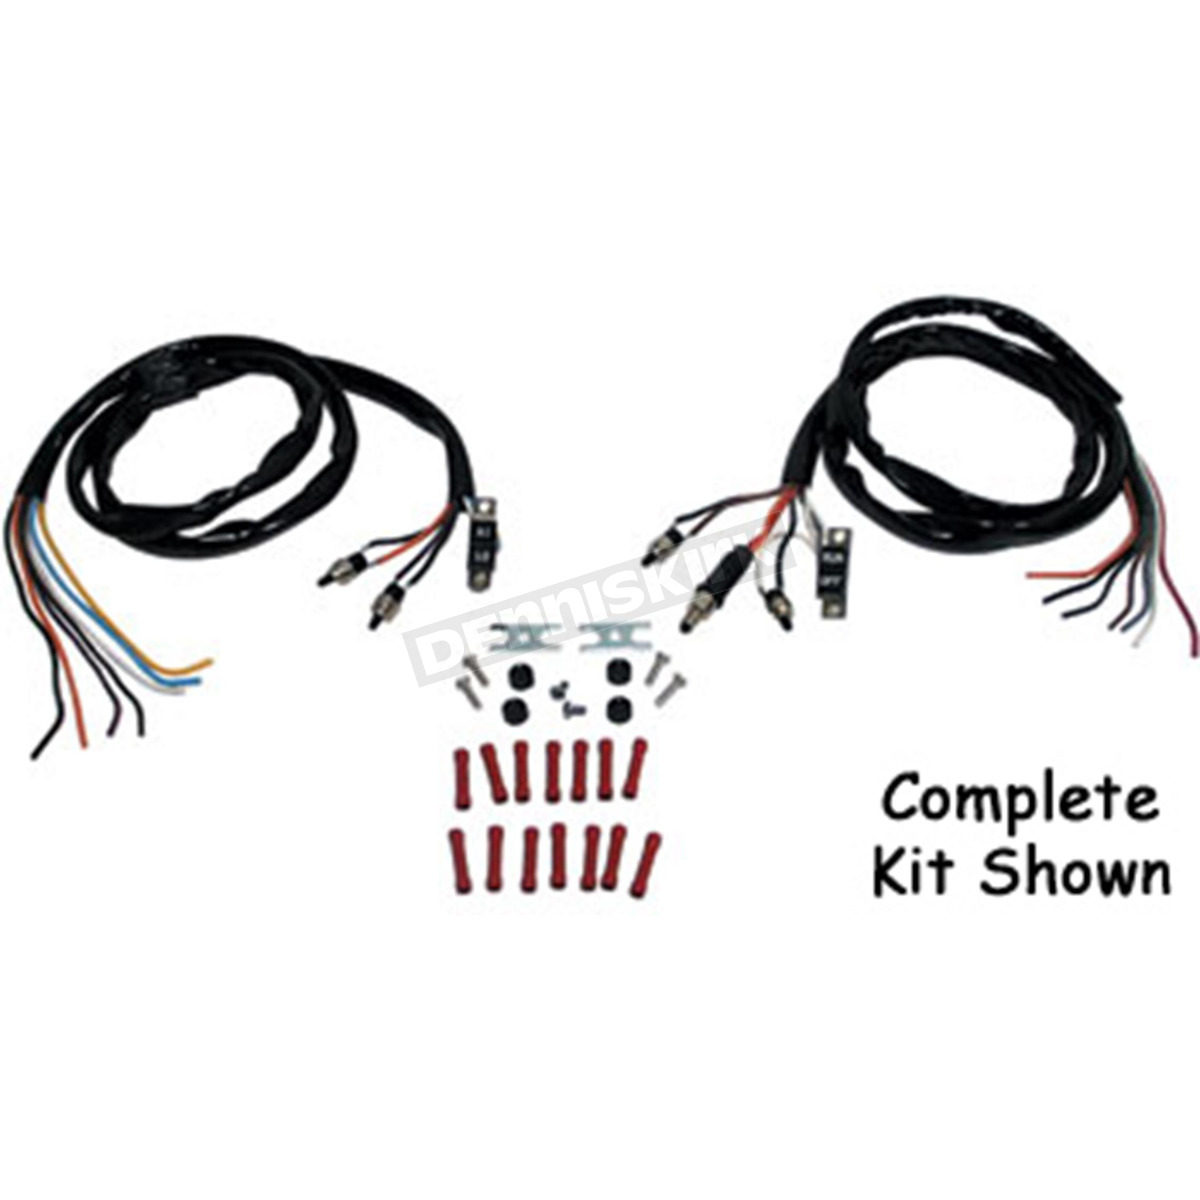 v-factor handlebar wiring harness kit